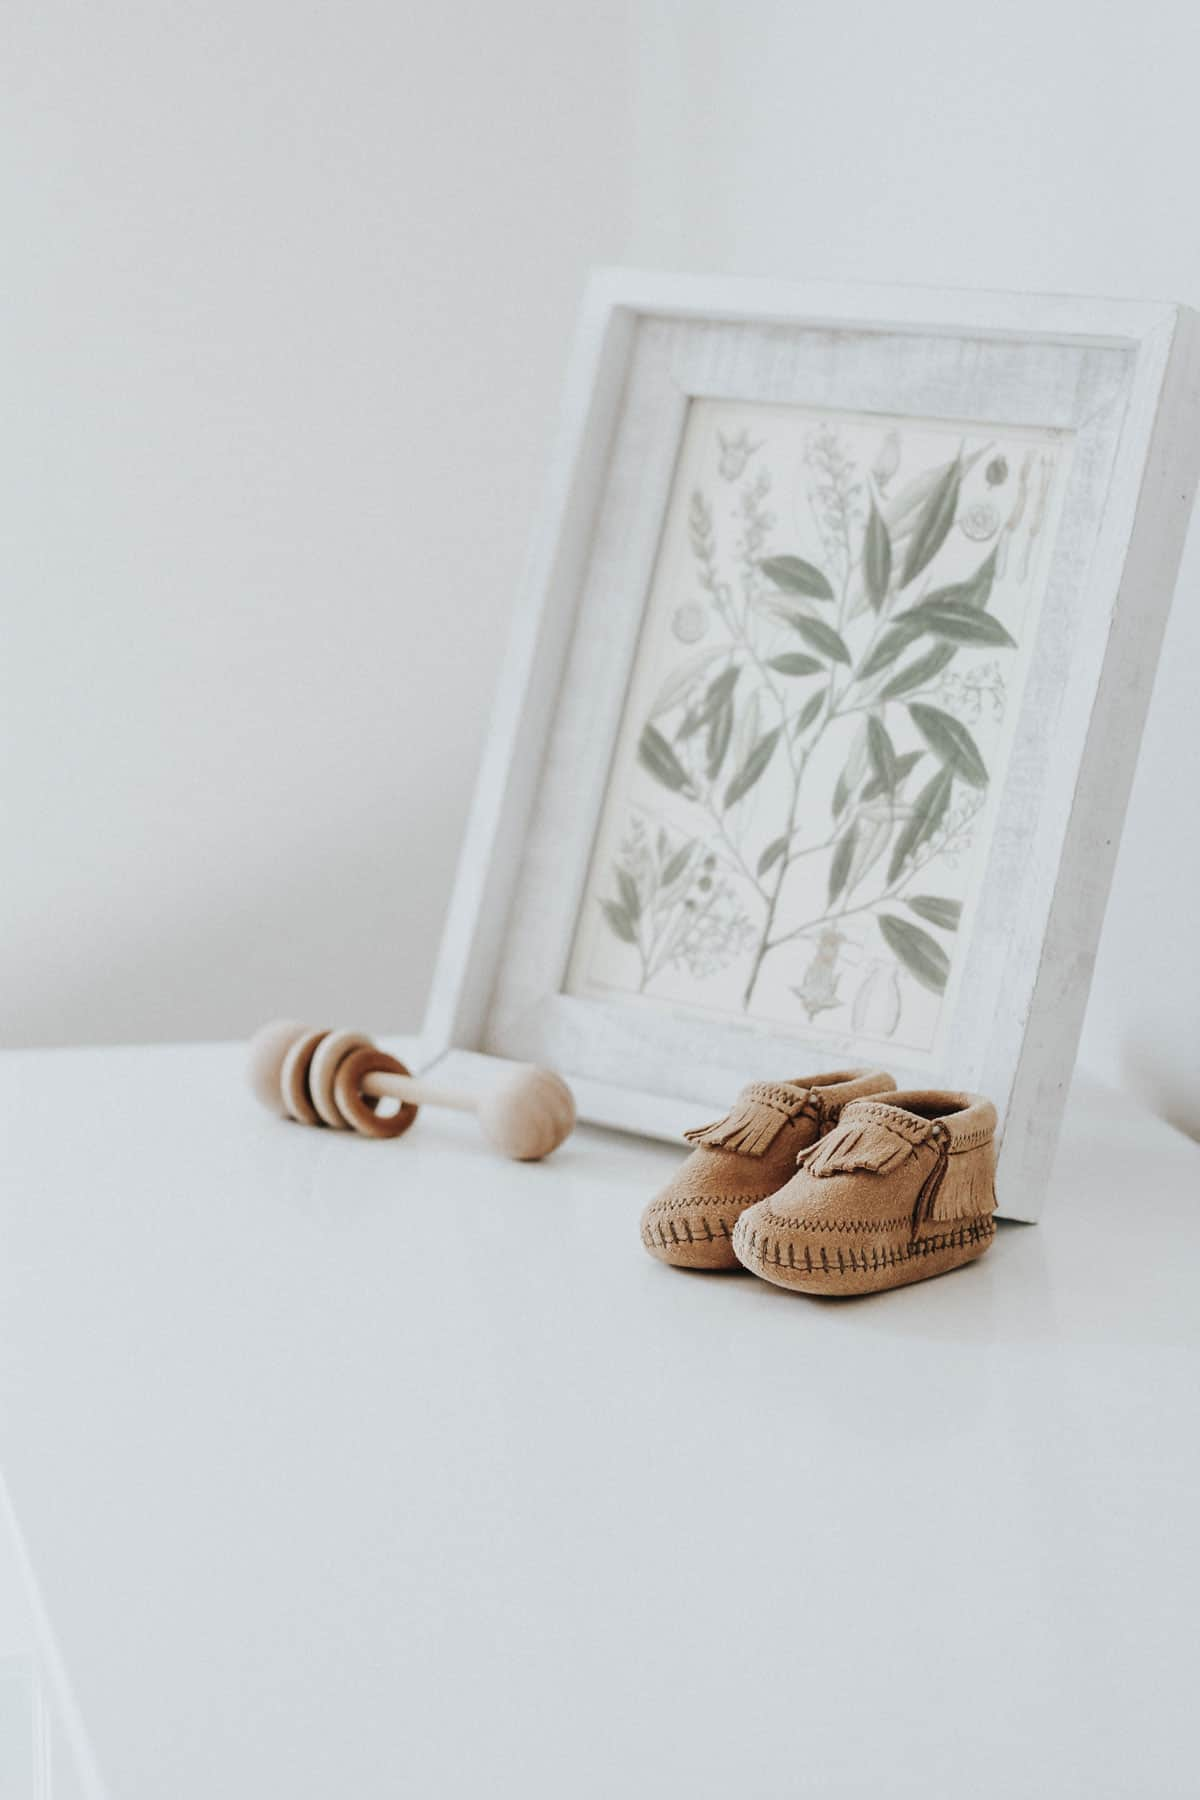 Moccasins and a wooden baby rattle.